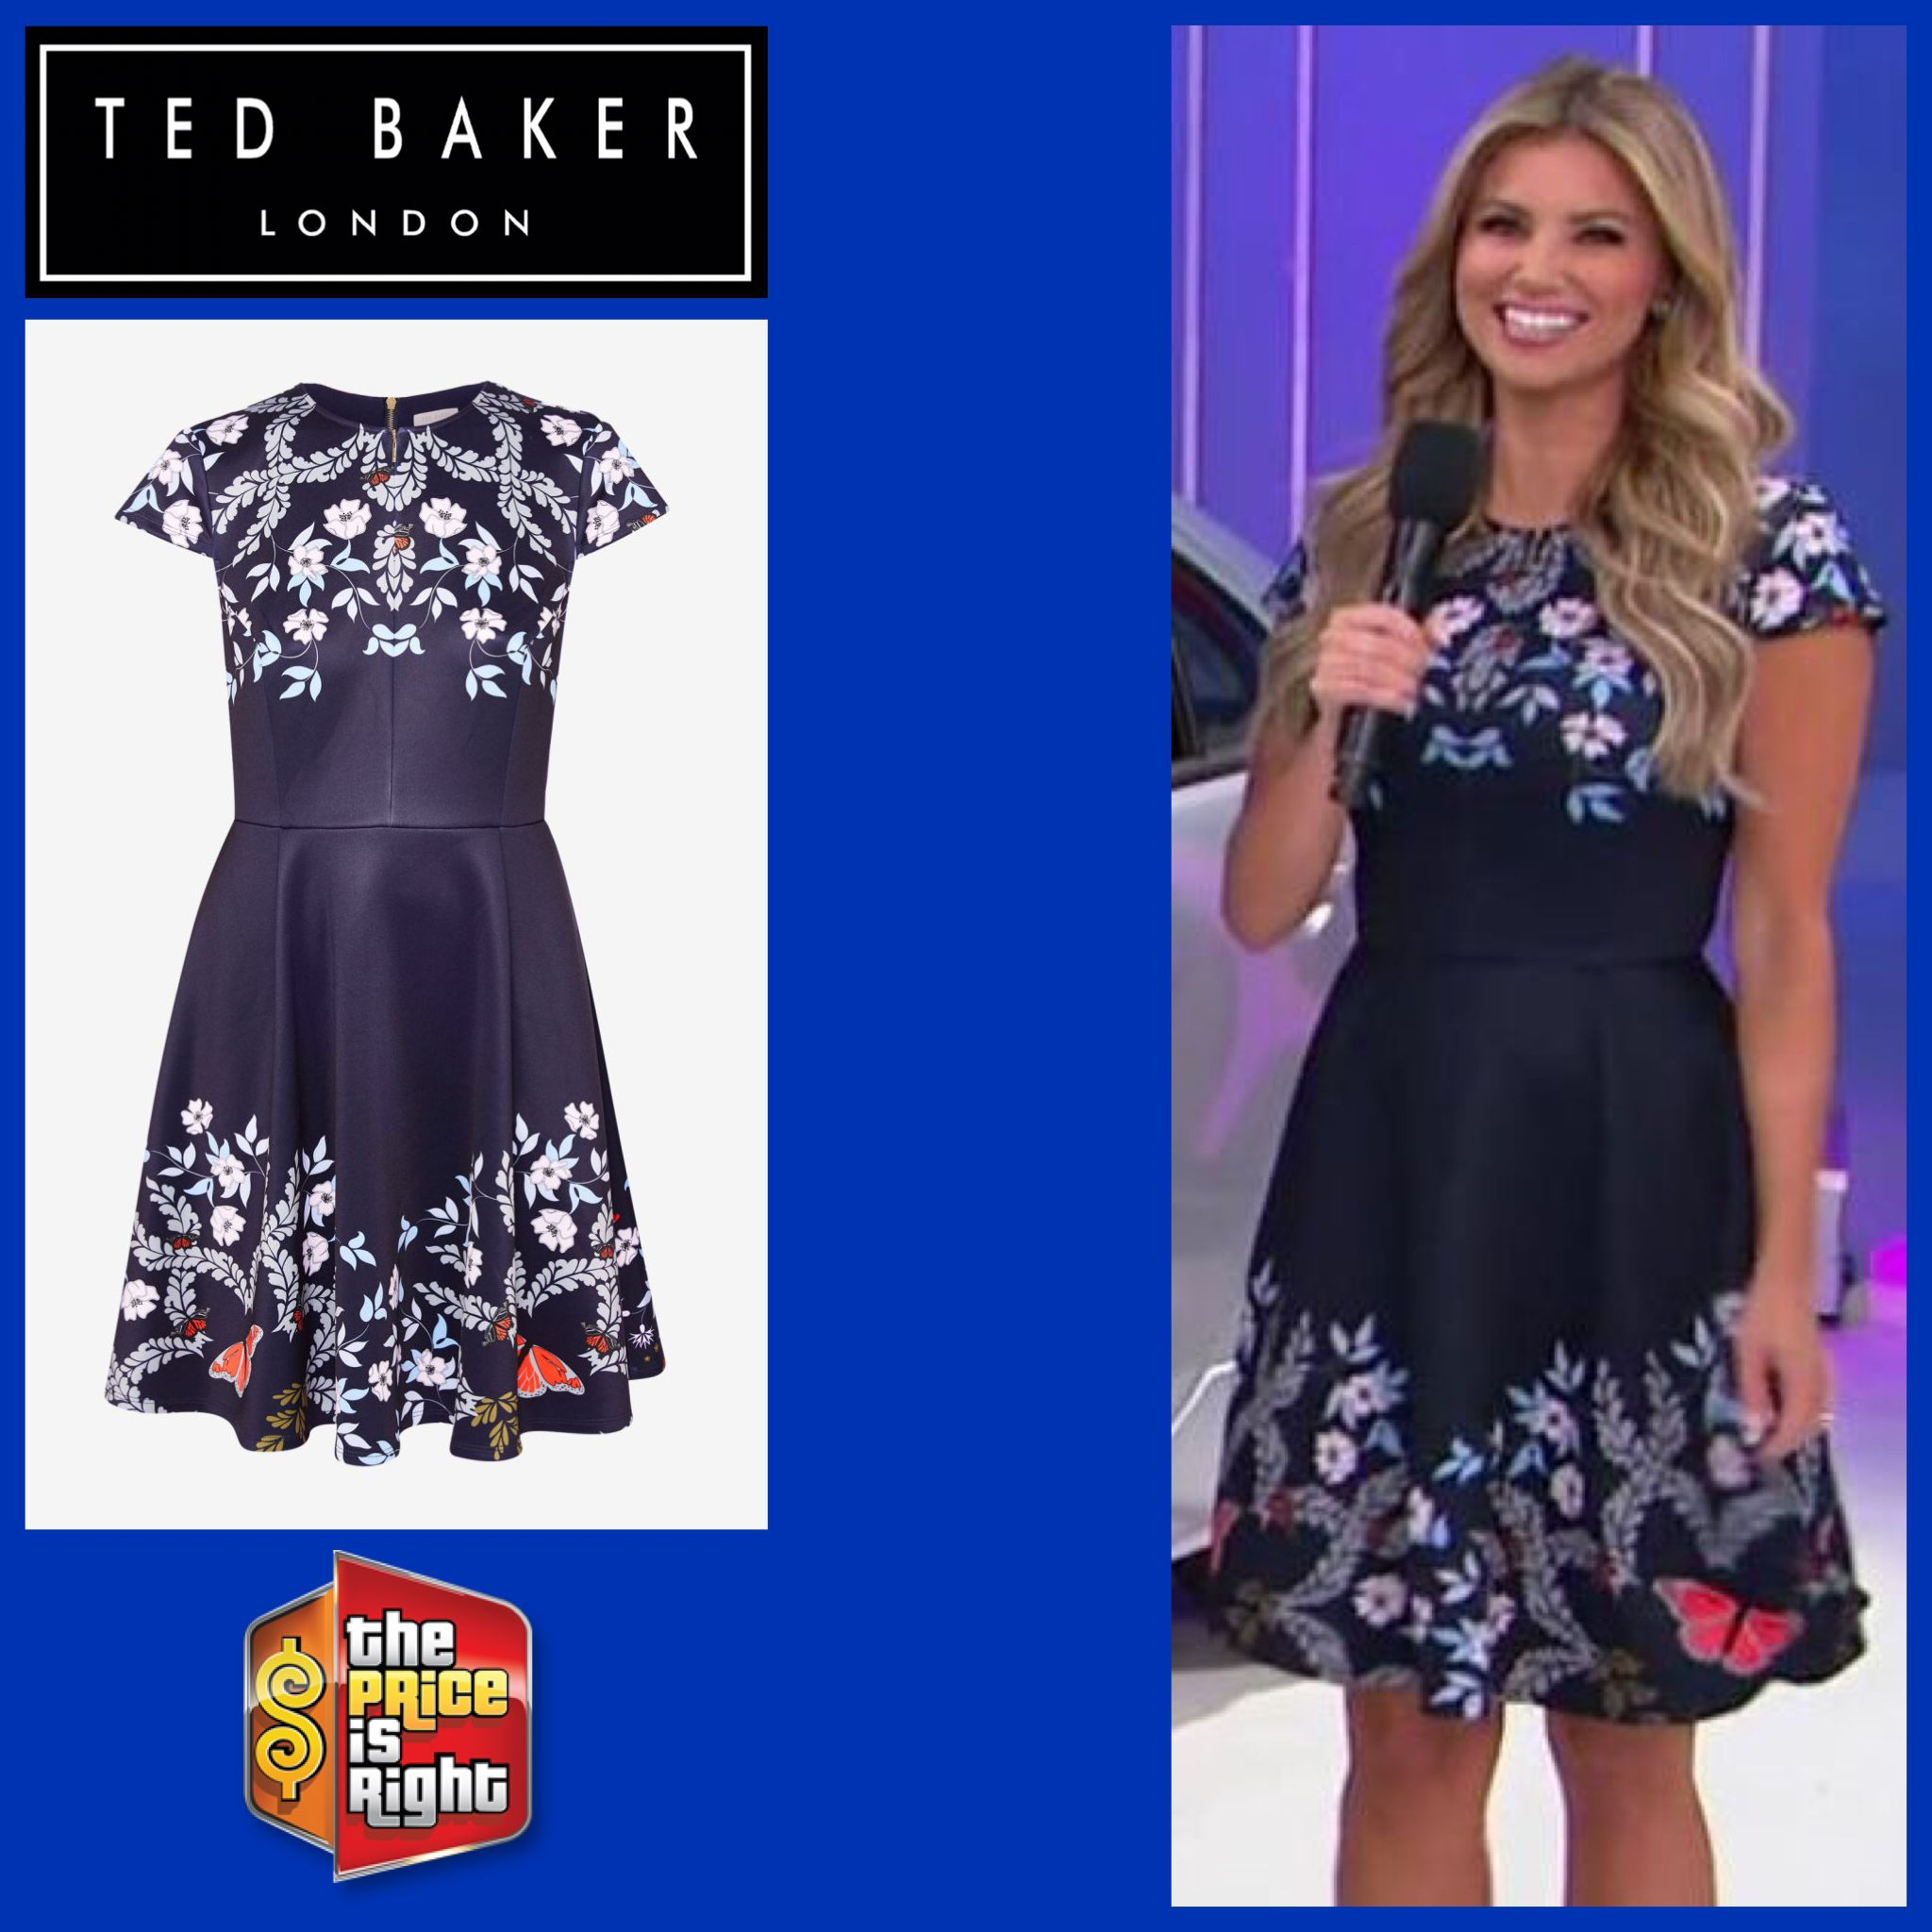 d8949d9ae TED BAKER LONDON Saydi Kyoto Gardens Skater Dress in Mid Blue worn by Amber  Lancaster